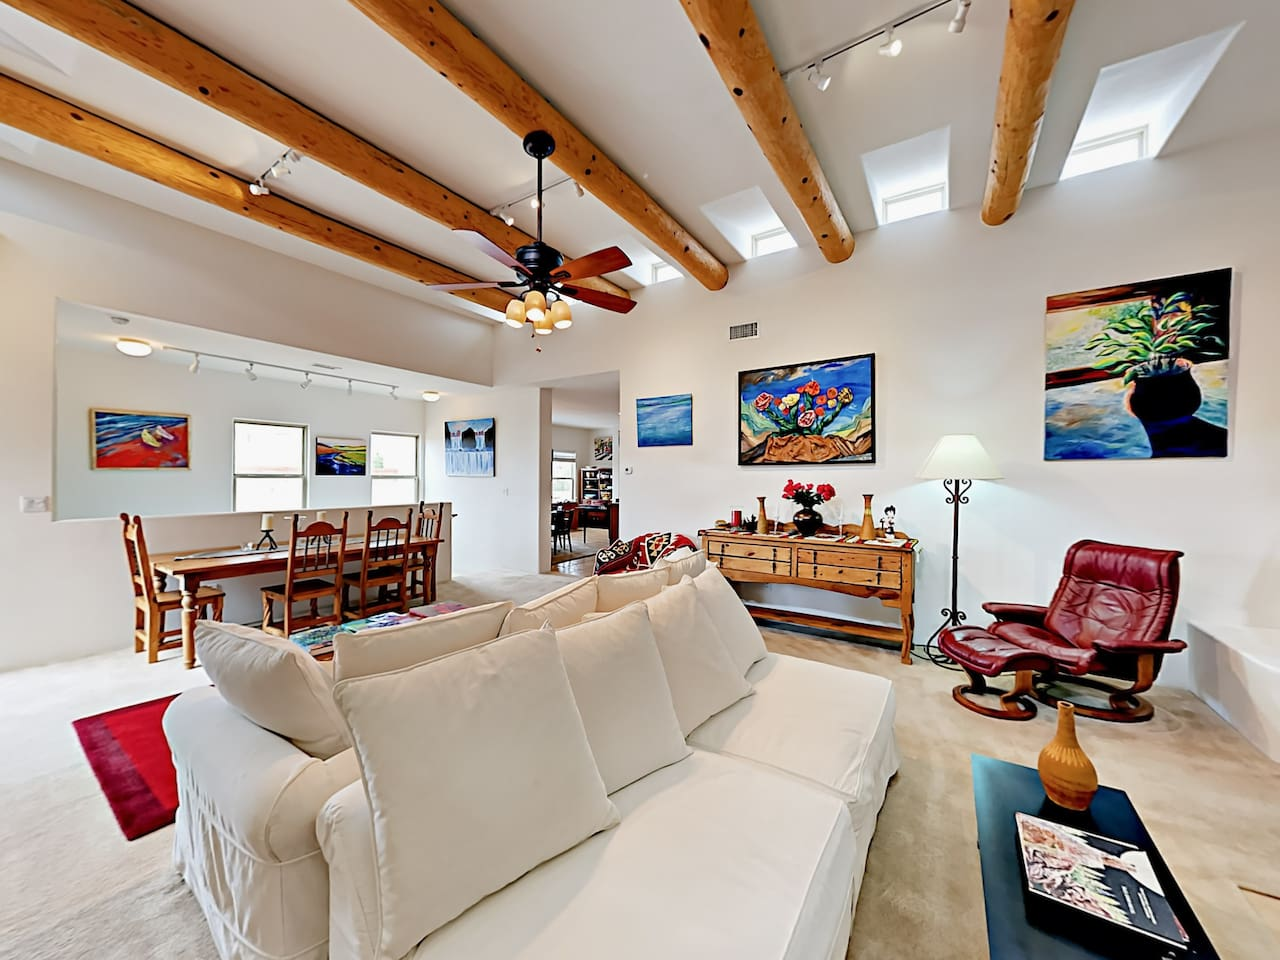 Welcome to Santa Fe! Your rental is professionally managed by TurnKey Vacation Rentals.